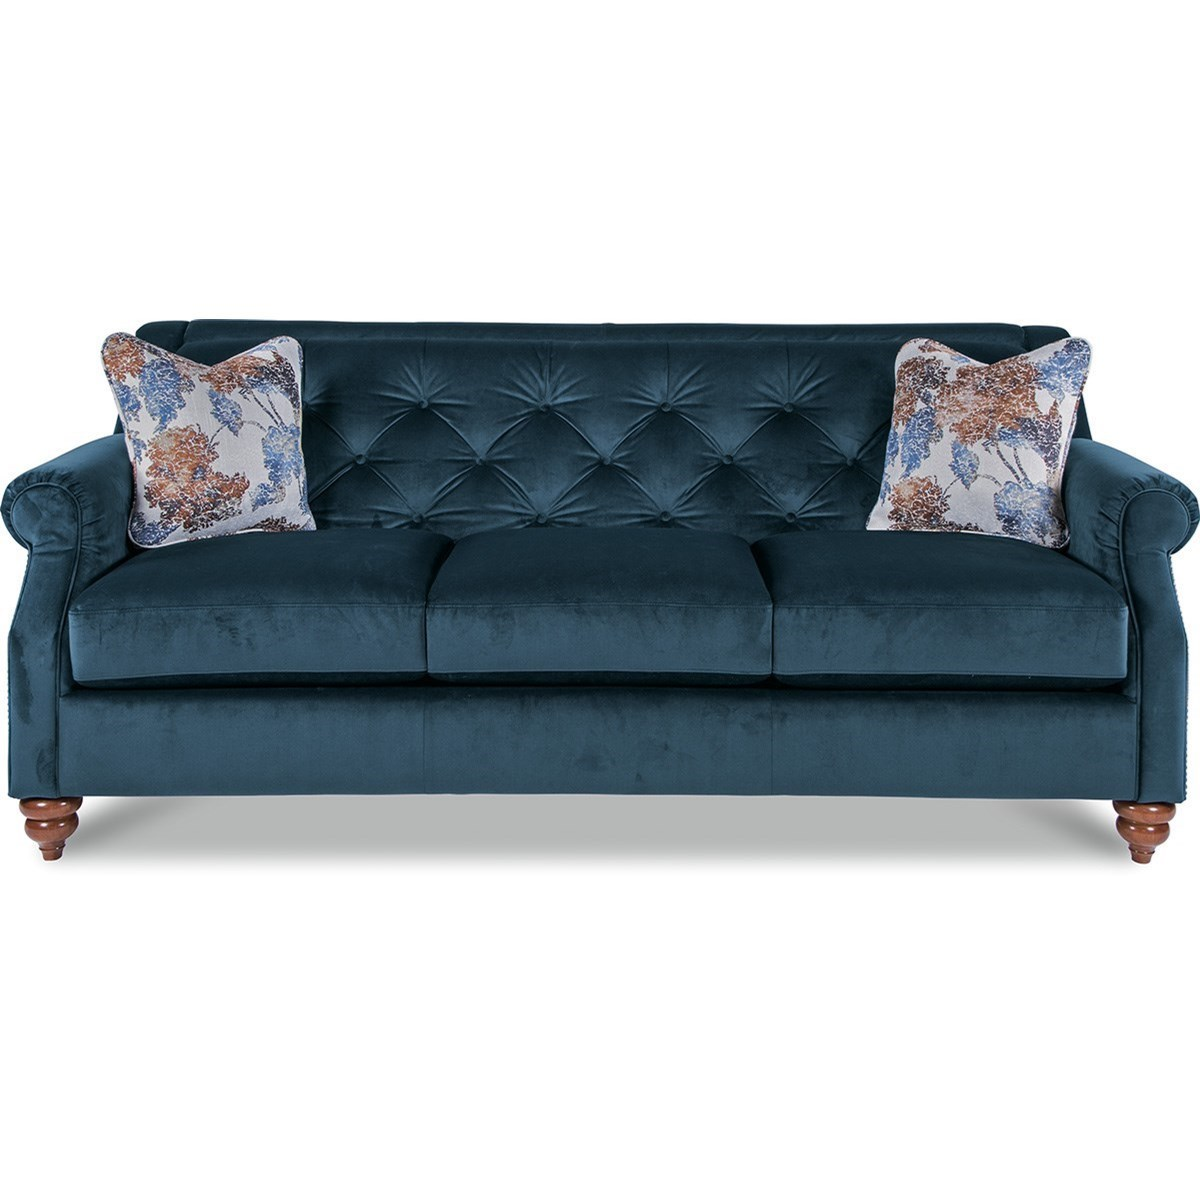 La Z Boy Aberdeen Traditional Sofa With Tufted Seatback | Morris Home | Sofa